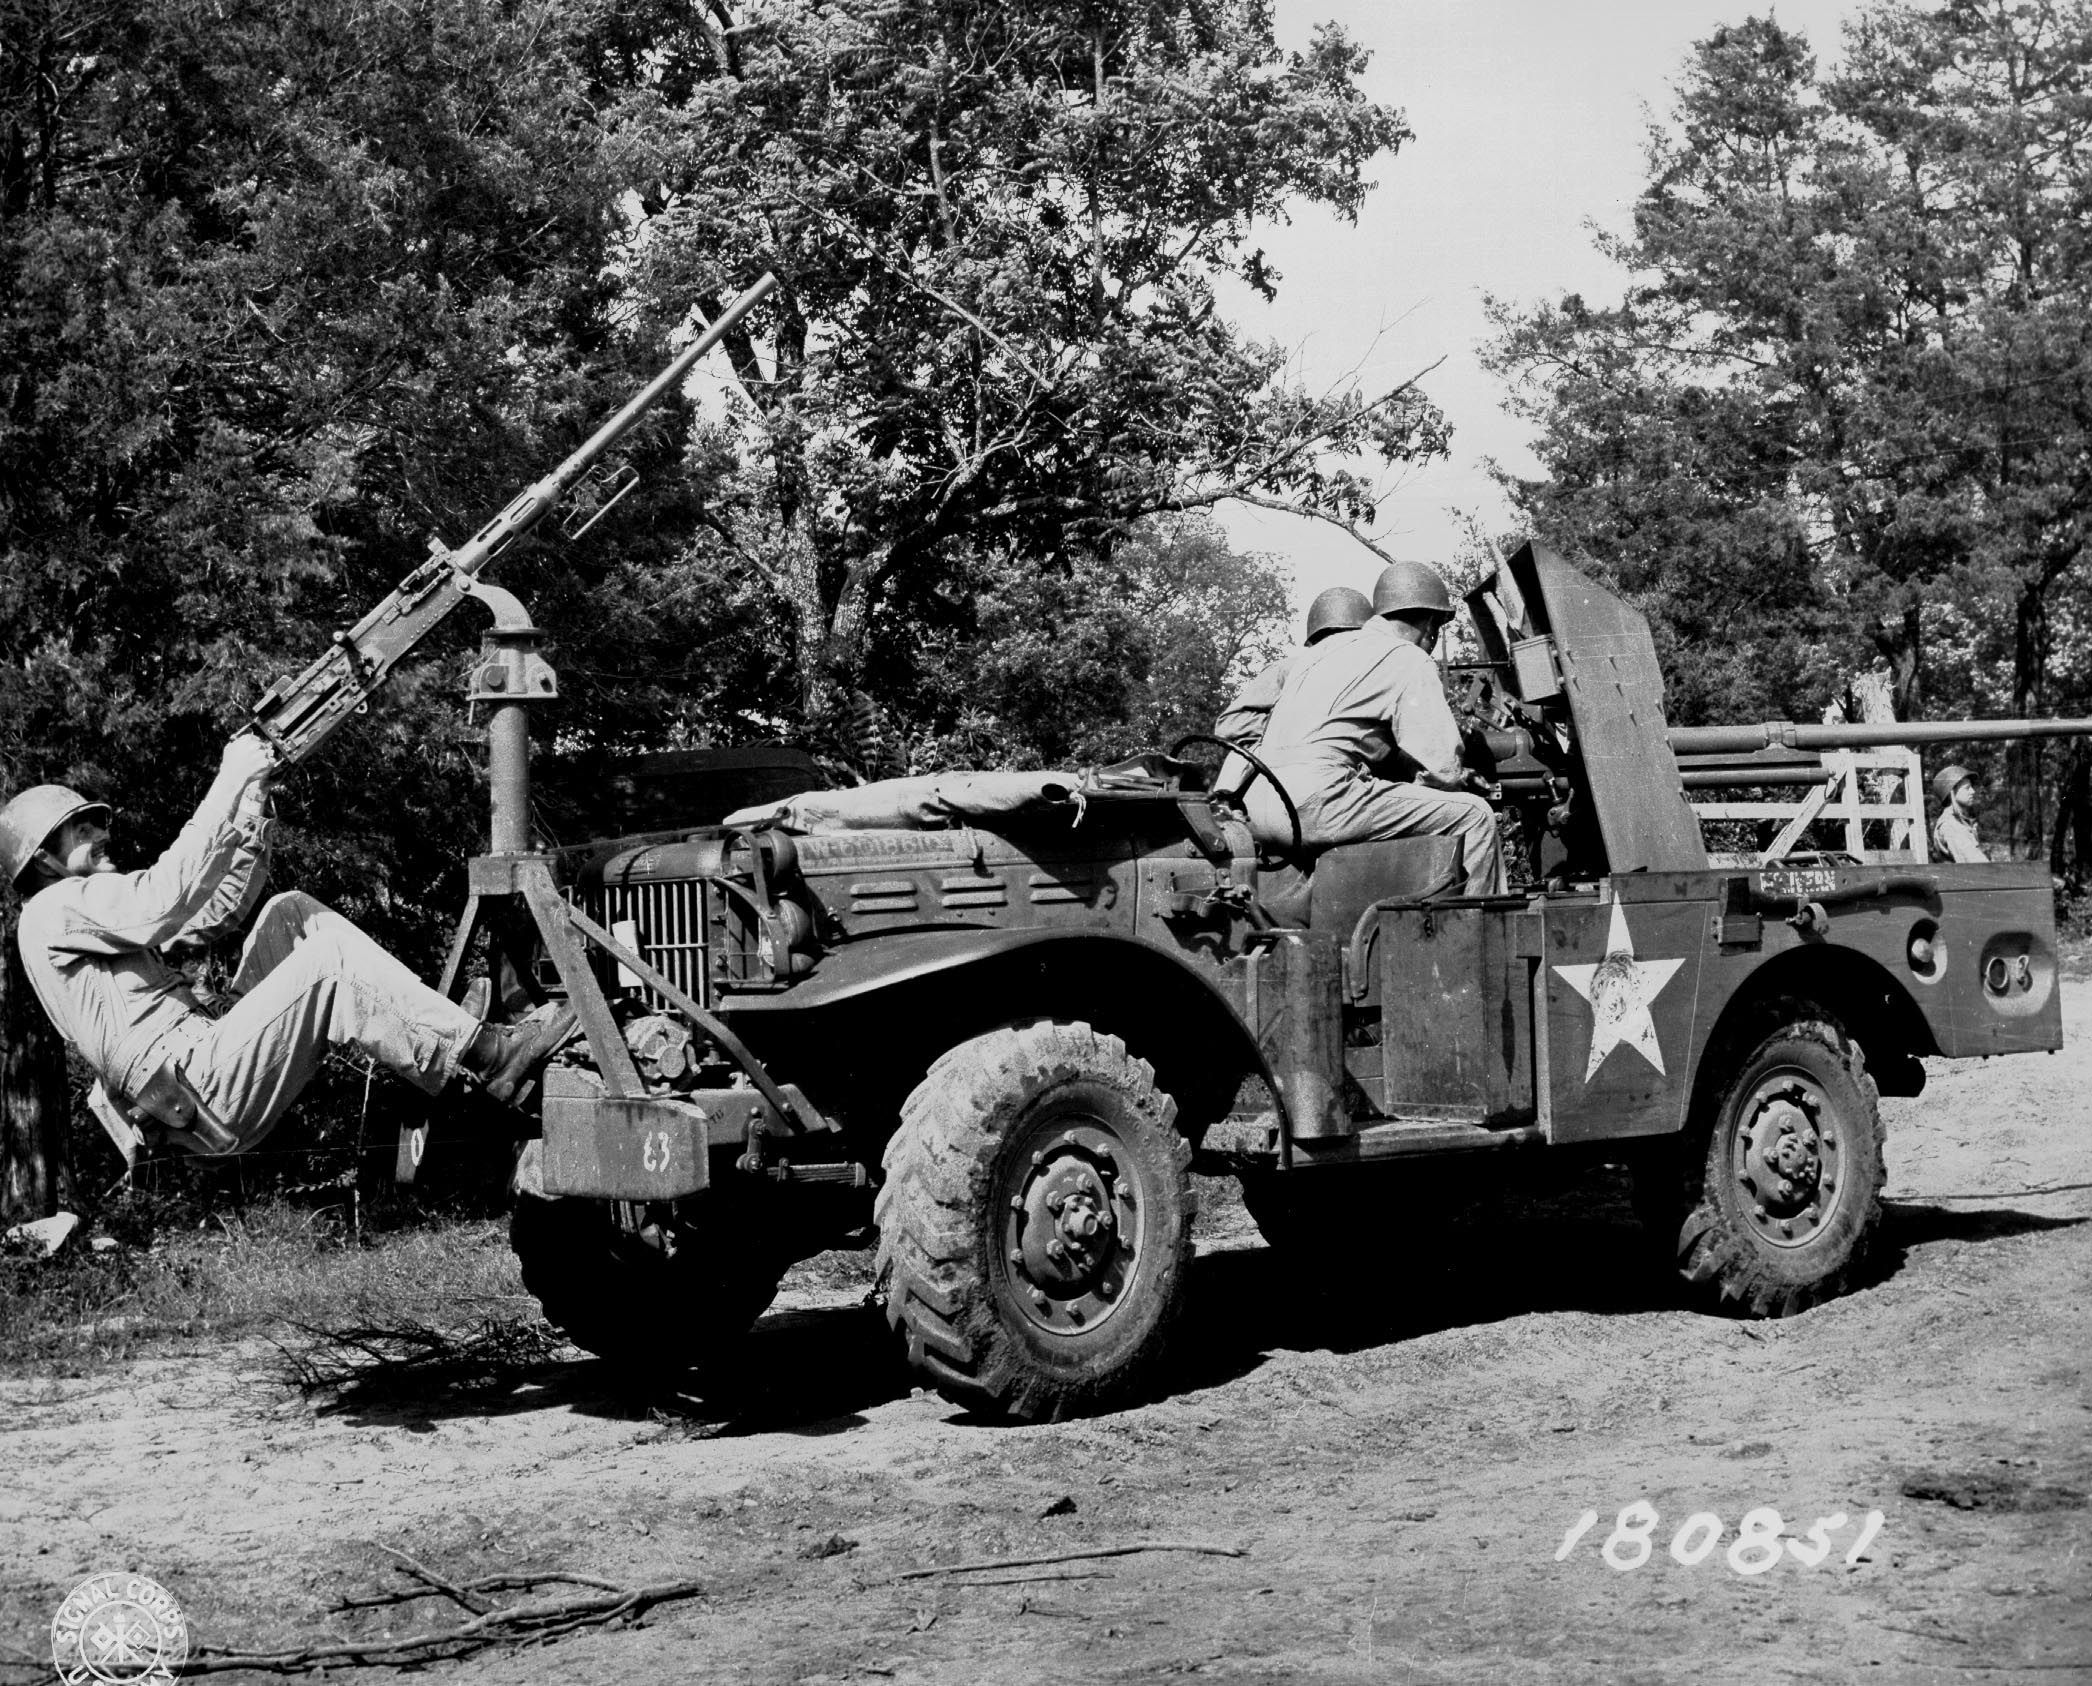 Dodge trucks in wwii - 37 Mm Gun M3 Mounted Aboard A M6 Gun Motor Carriage With Additional 50